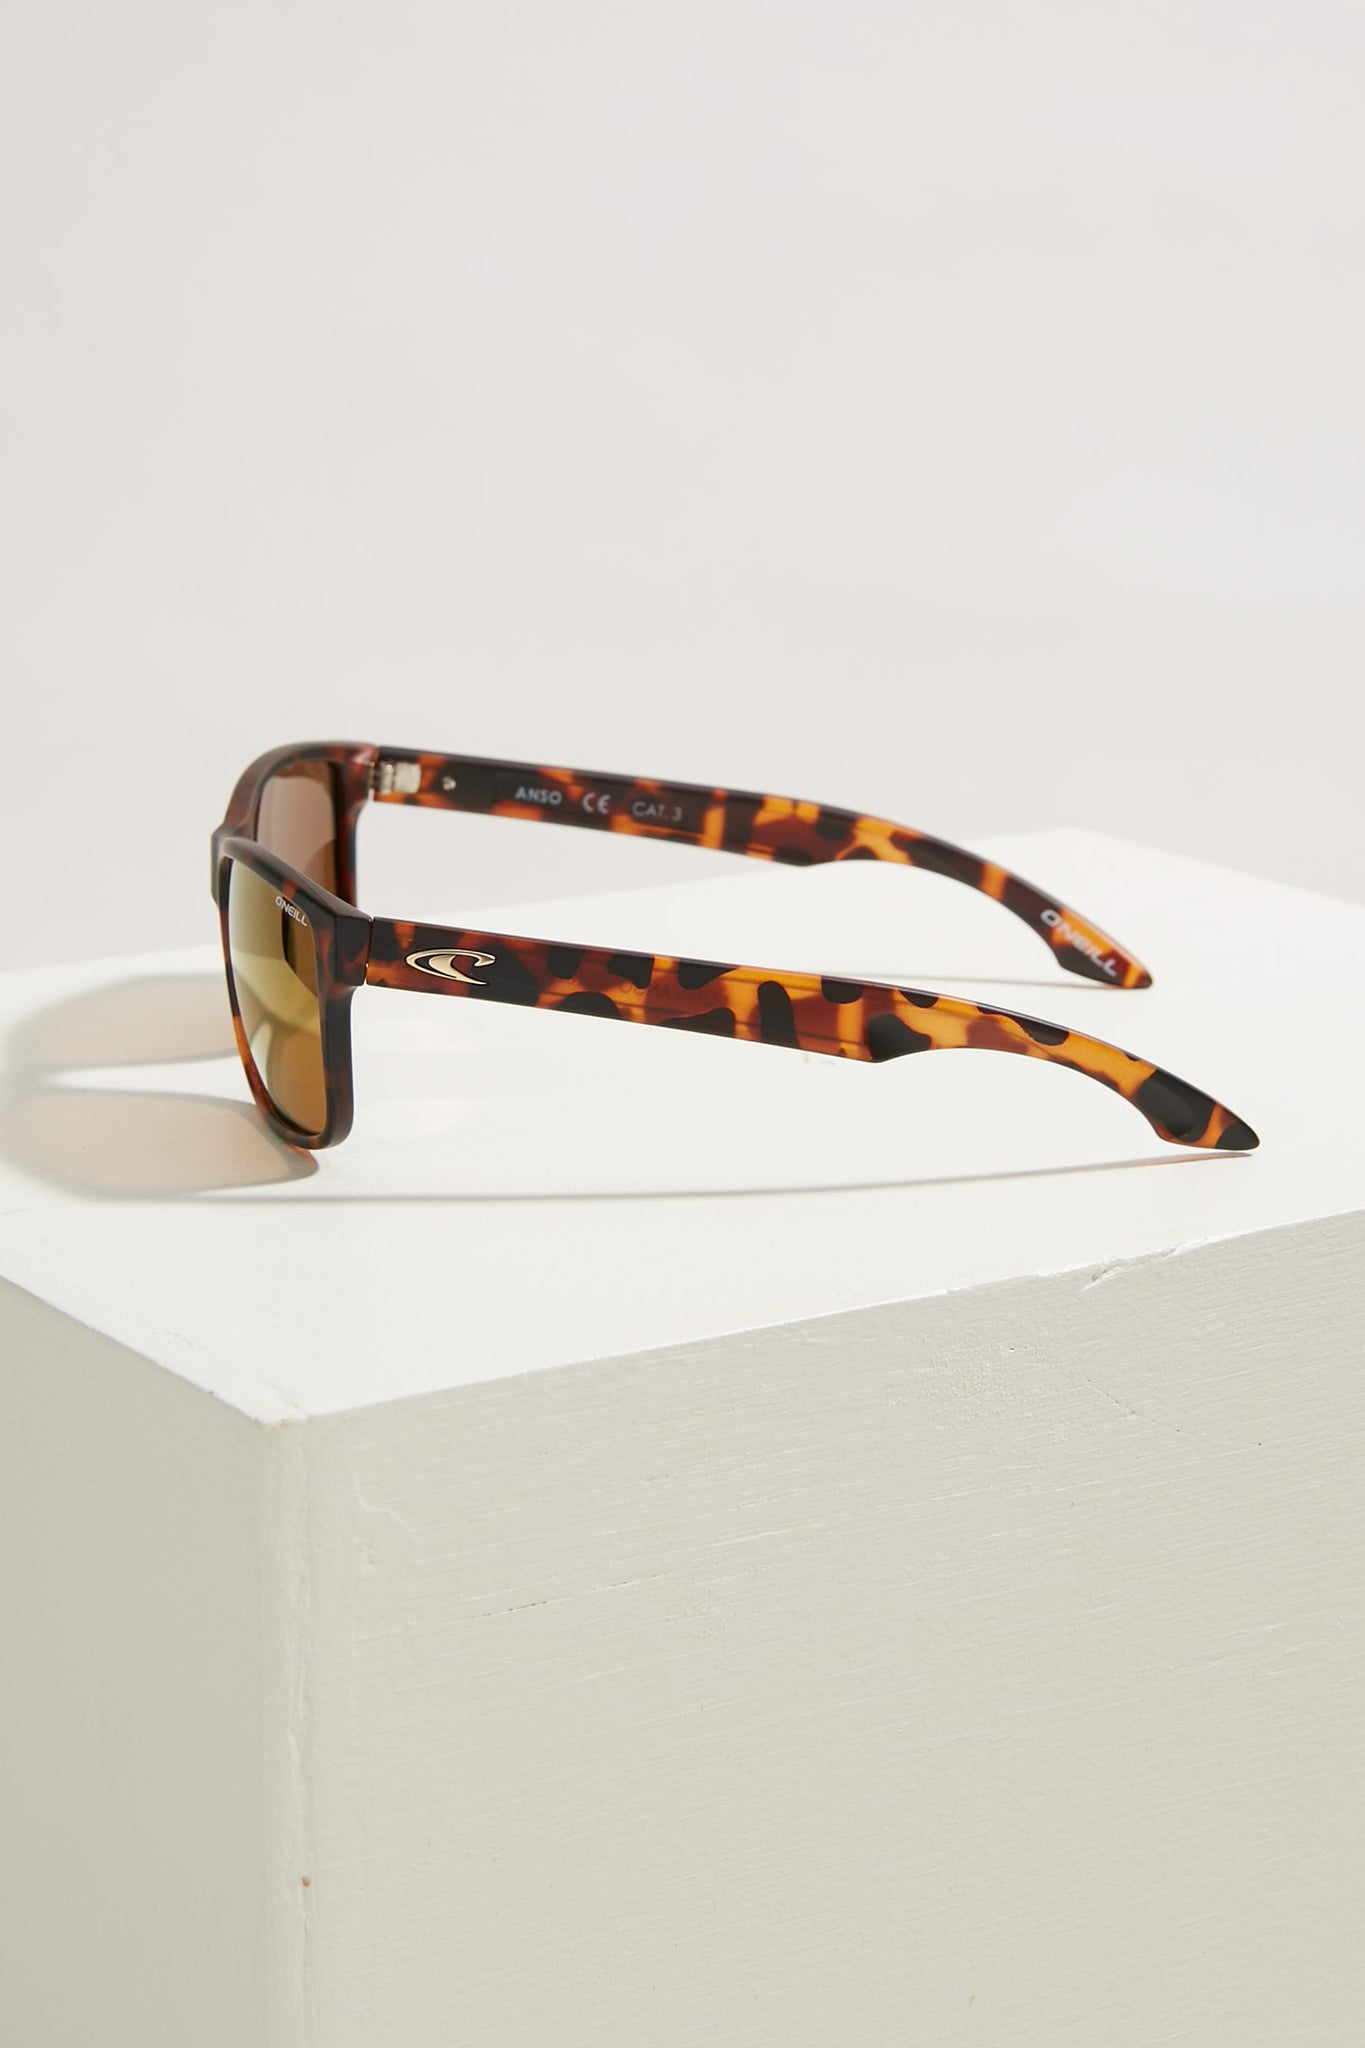 ANSO SUNGLASSES